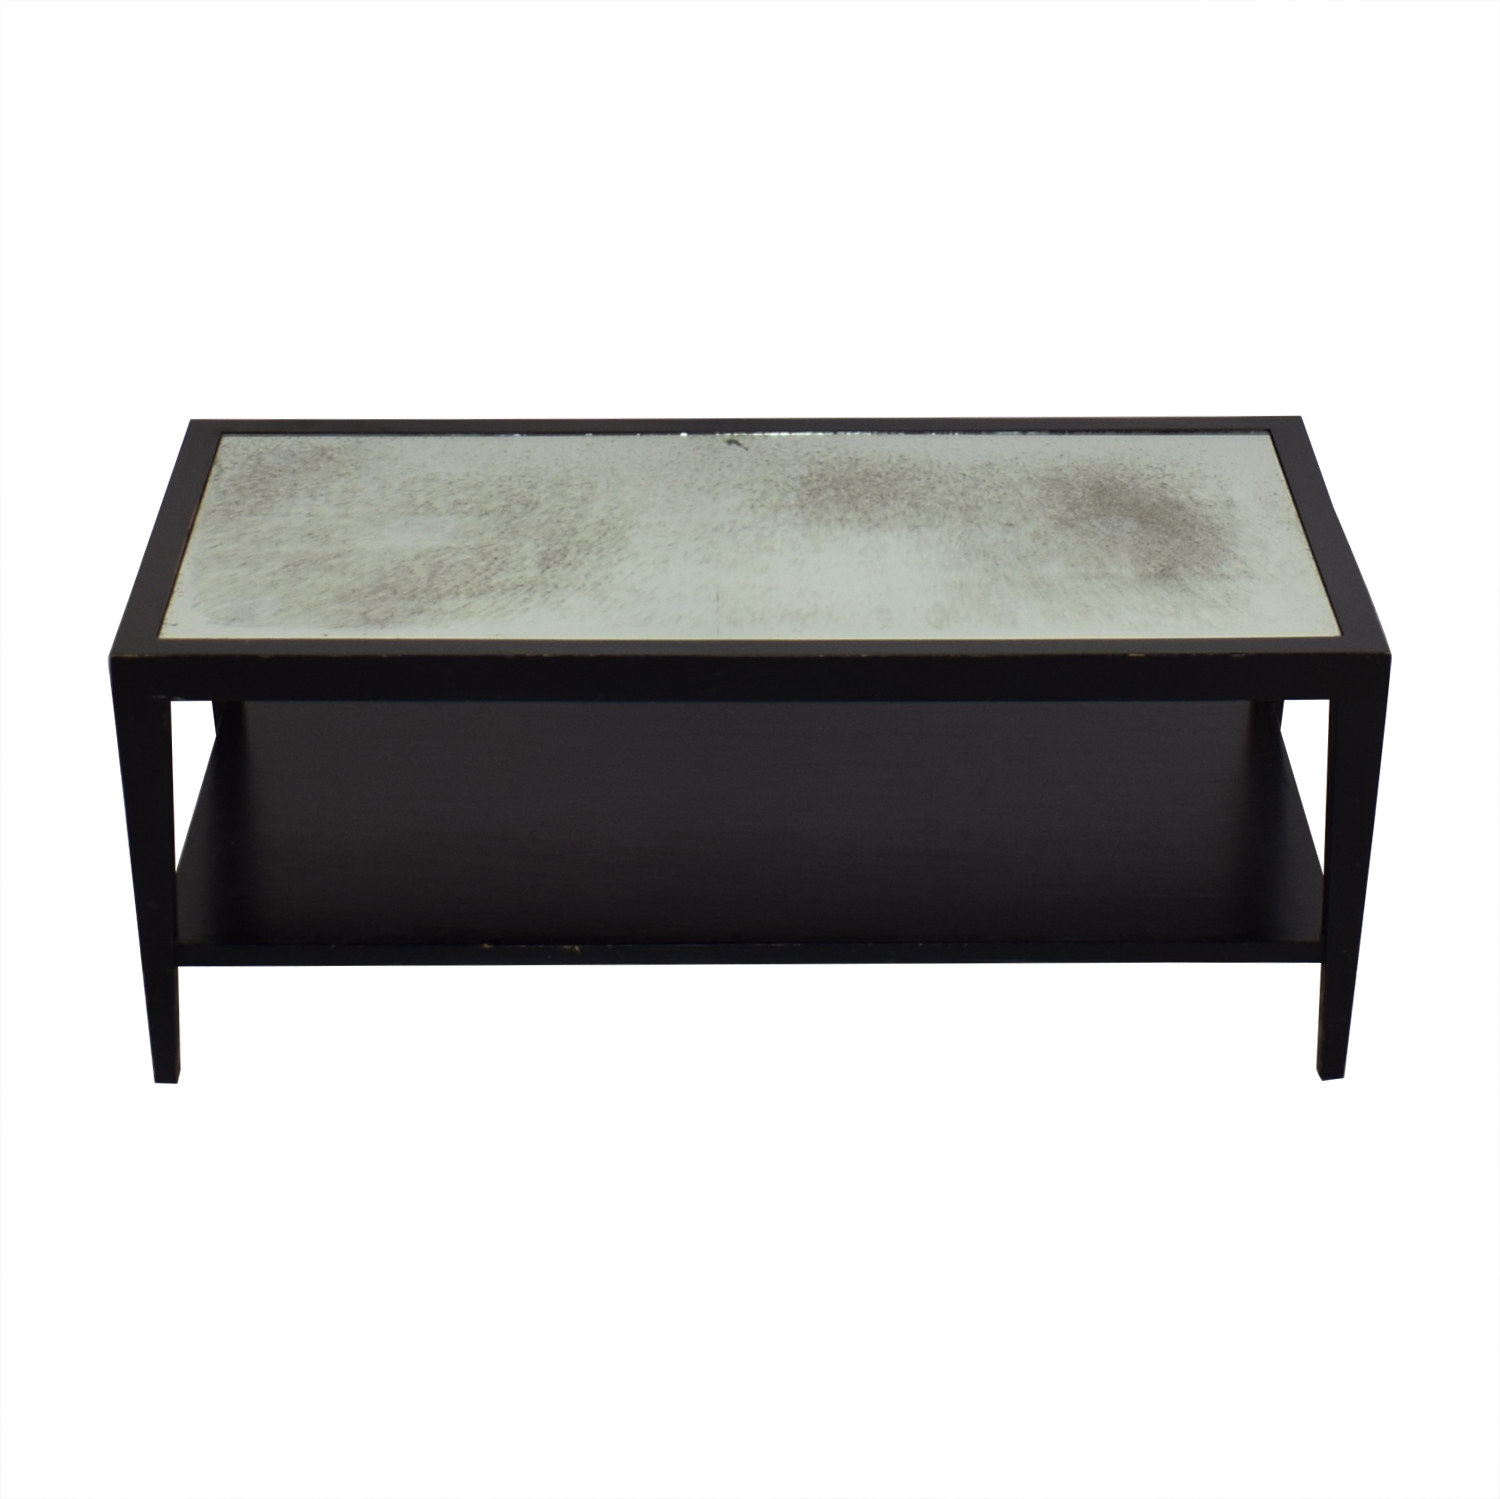 Crate & Barrel Crate & Barrel Two Tiered Coffee Table